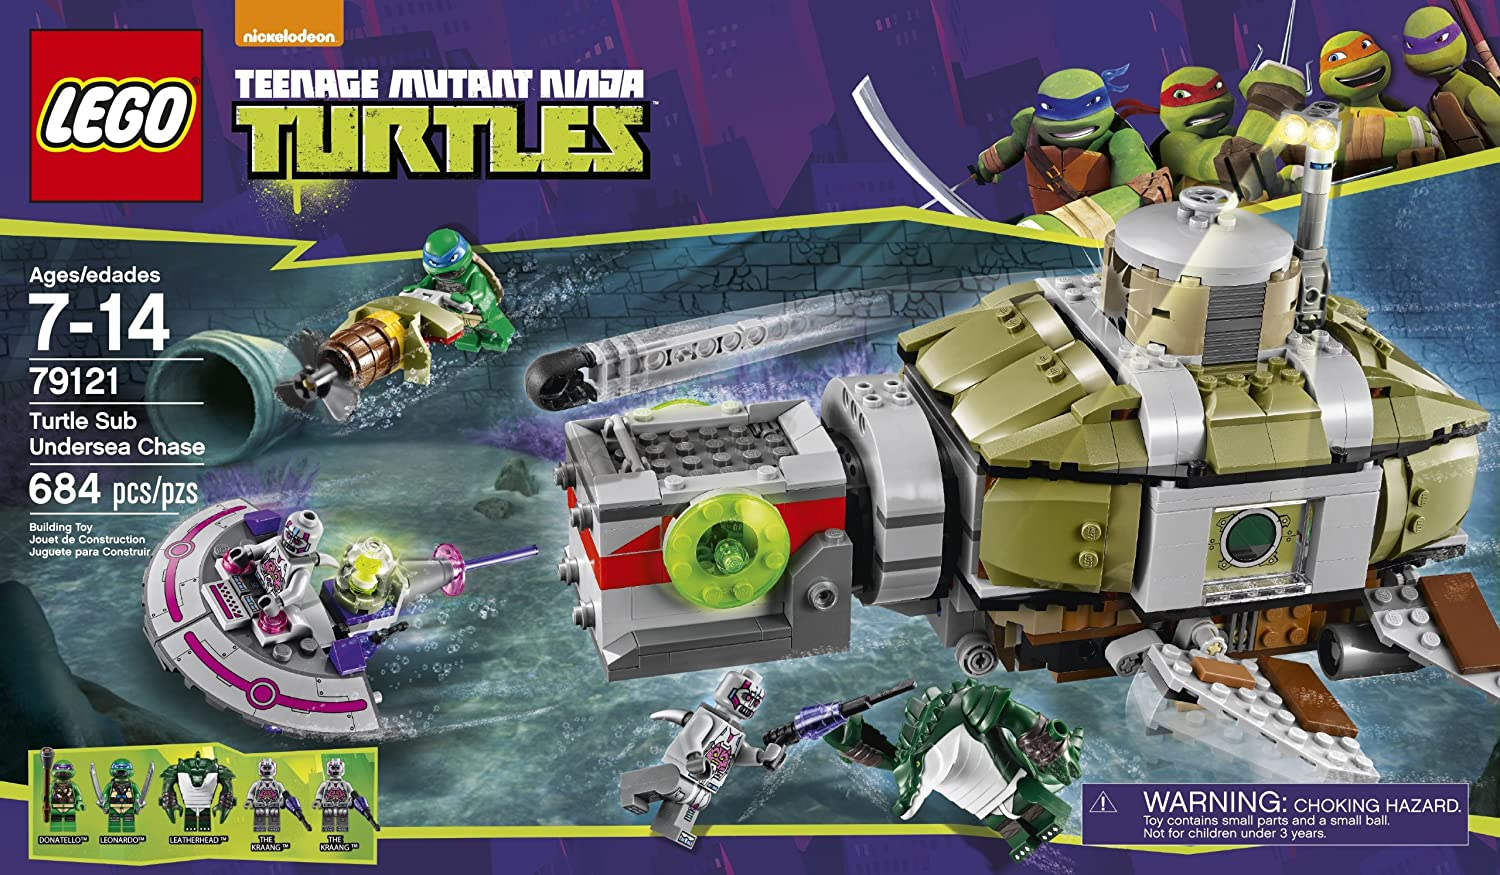 Amazon.com: LEGO Ninja Turtles 79121 Turtle Sub Undersea ...